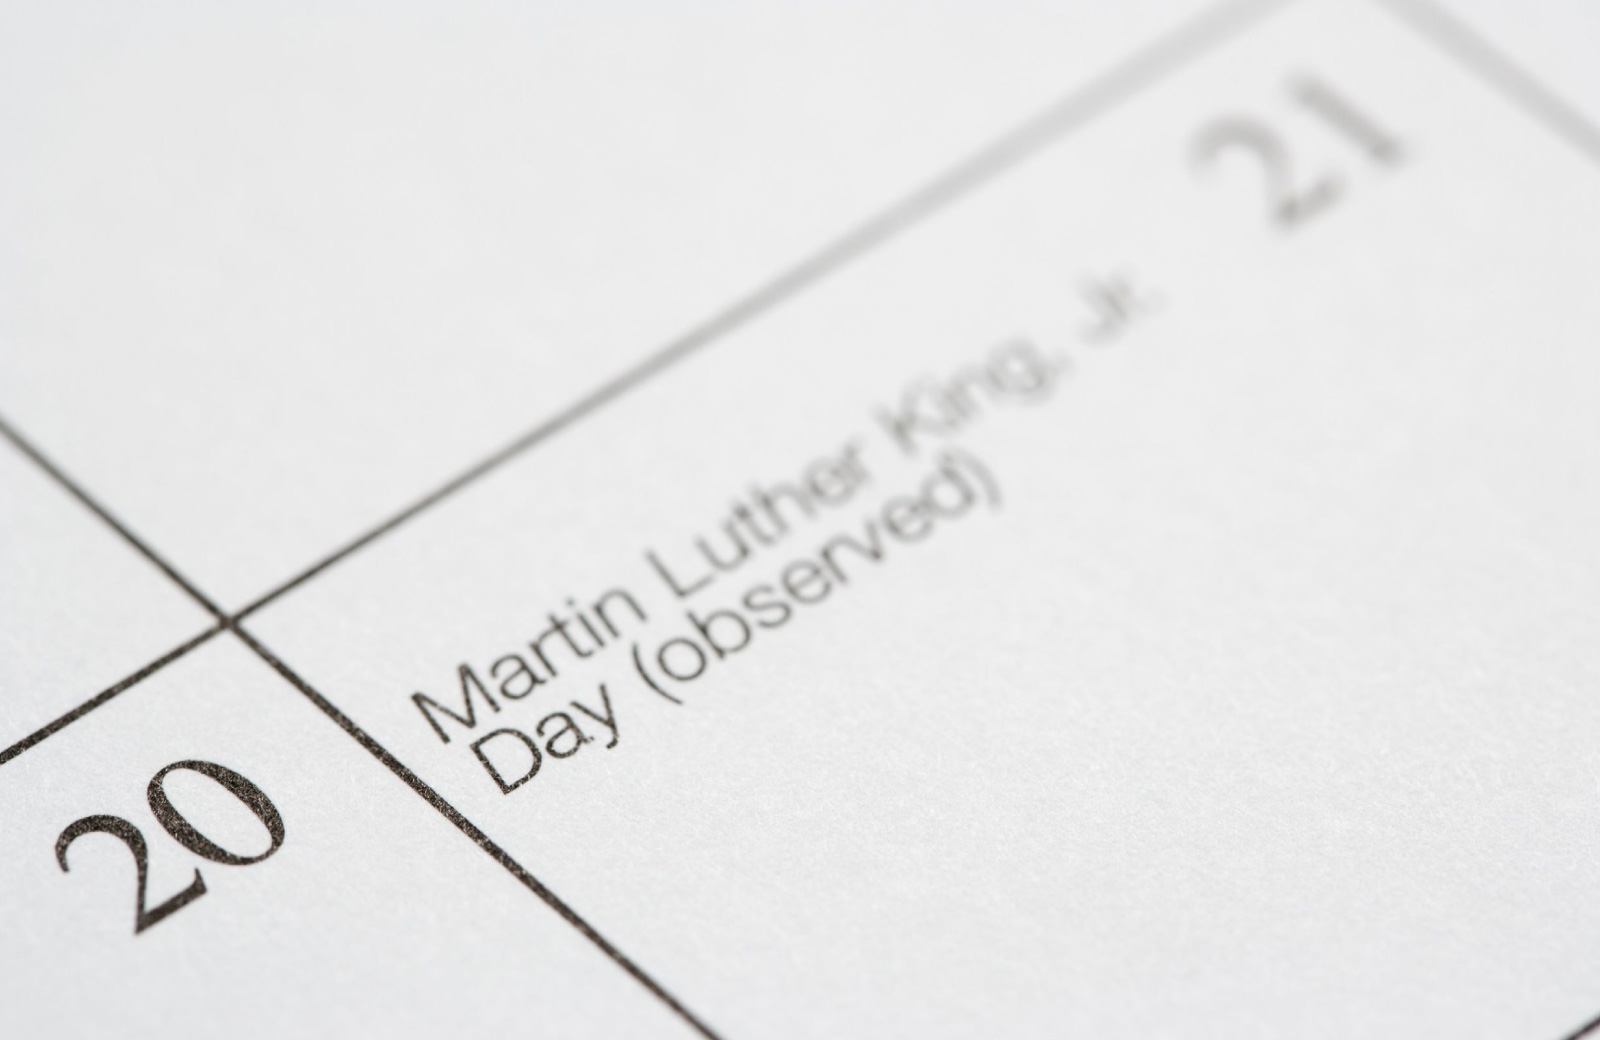 mlk jr holiday marked in the calendar